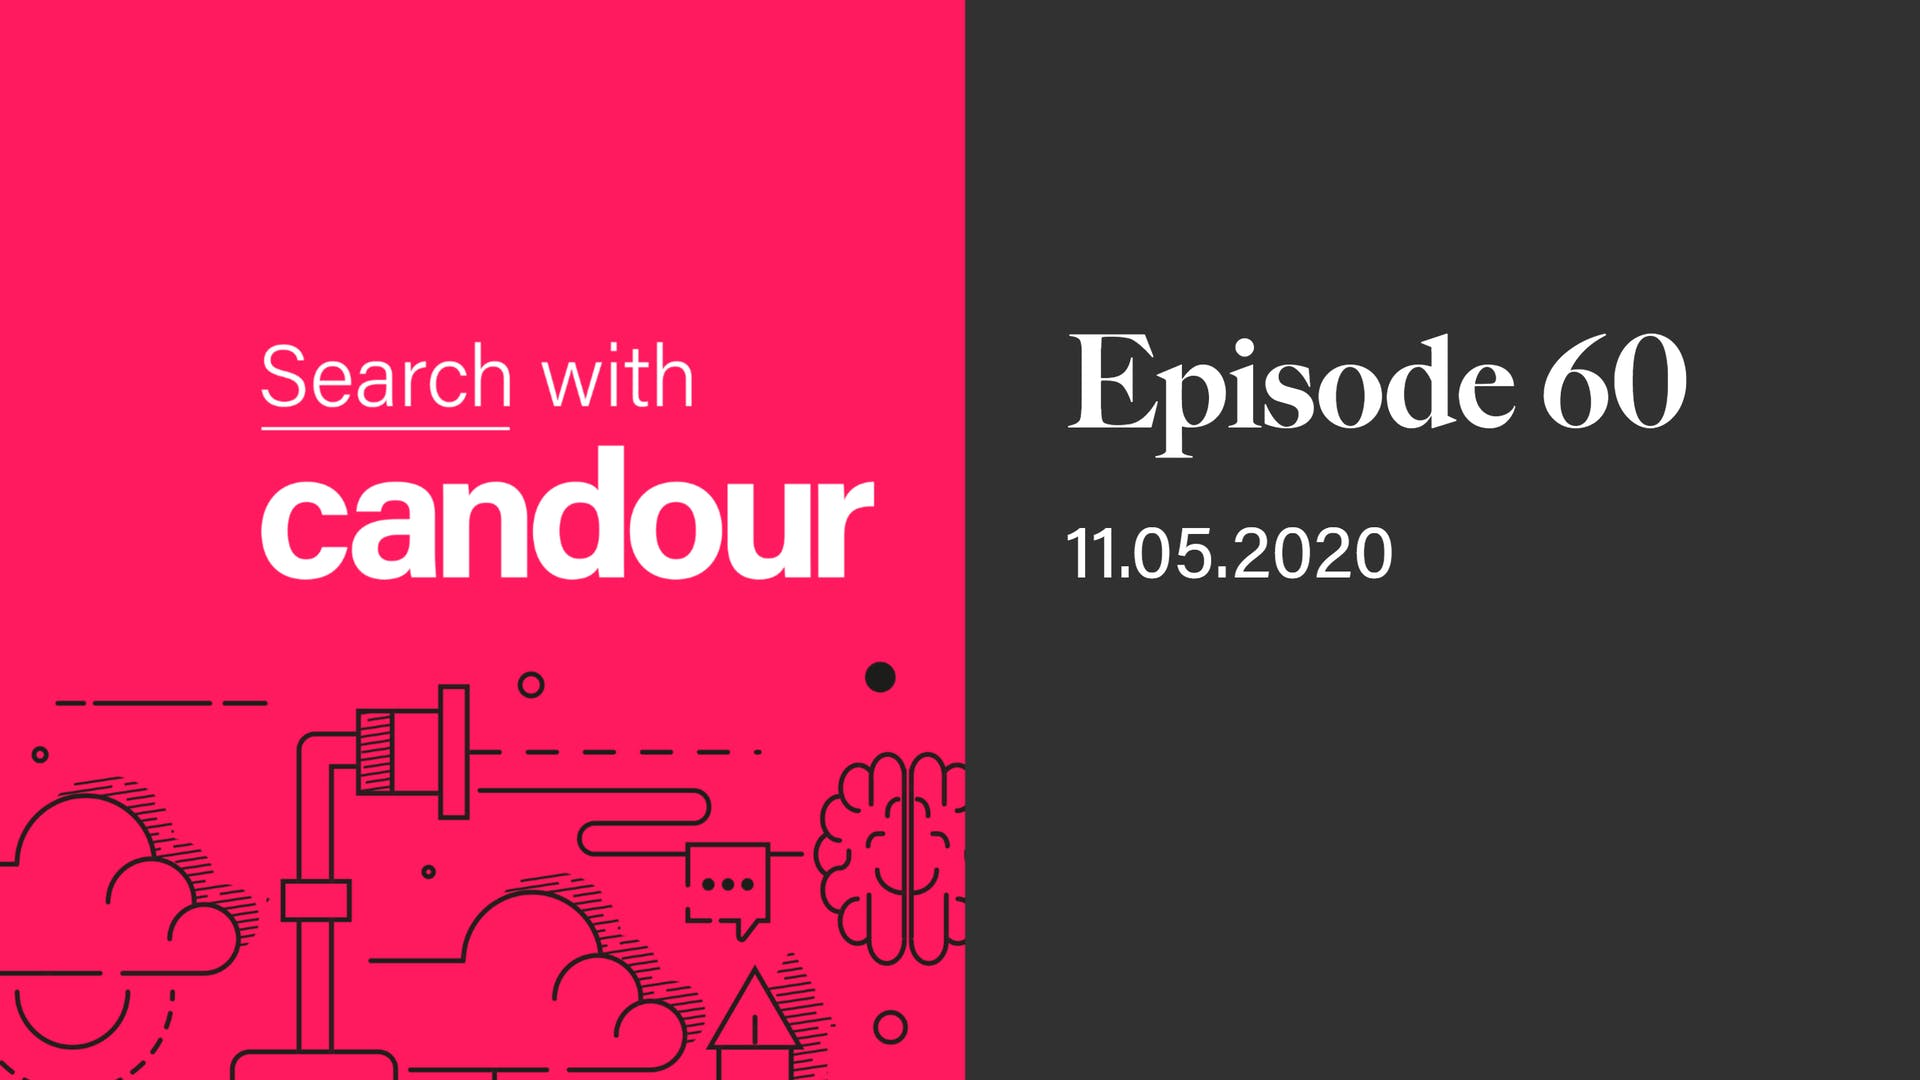 Episode 60 - Search with Candour